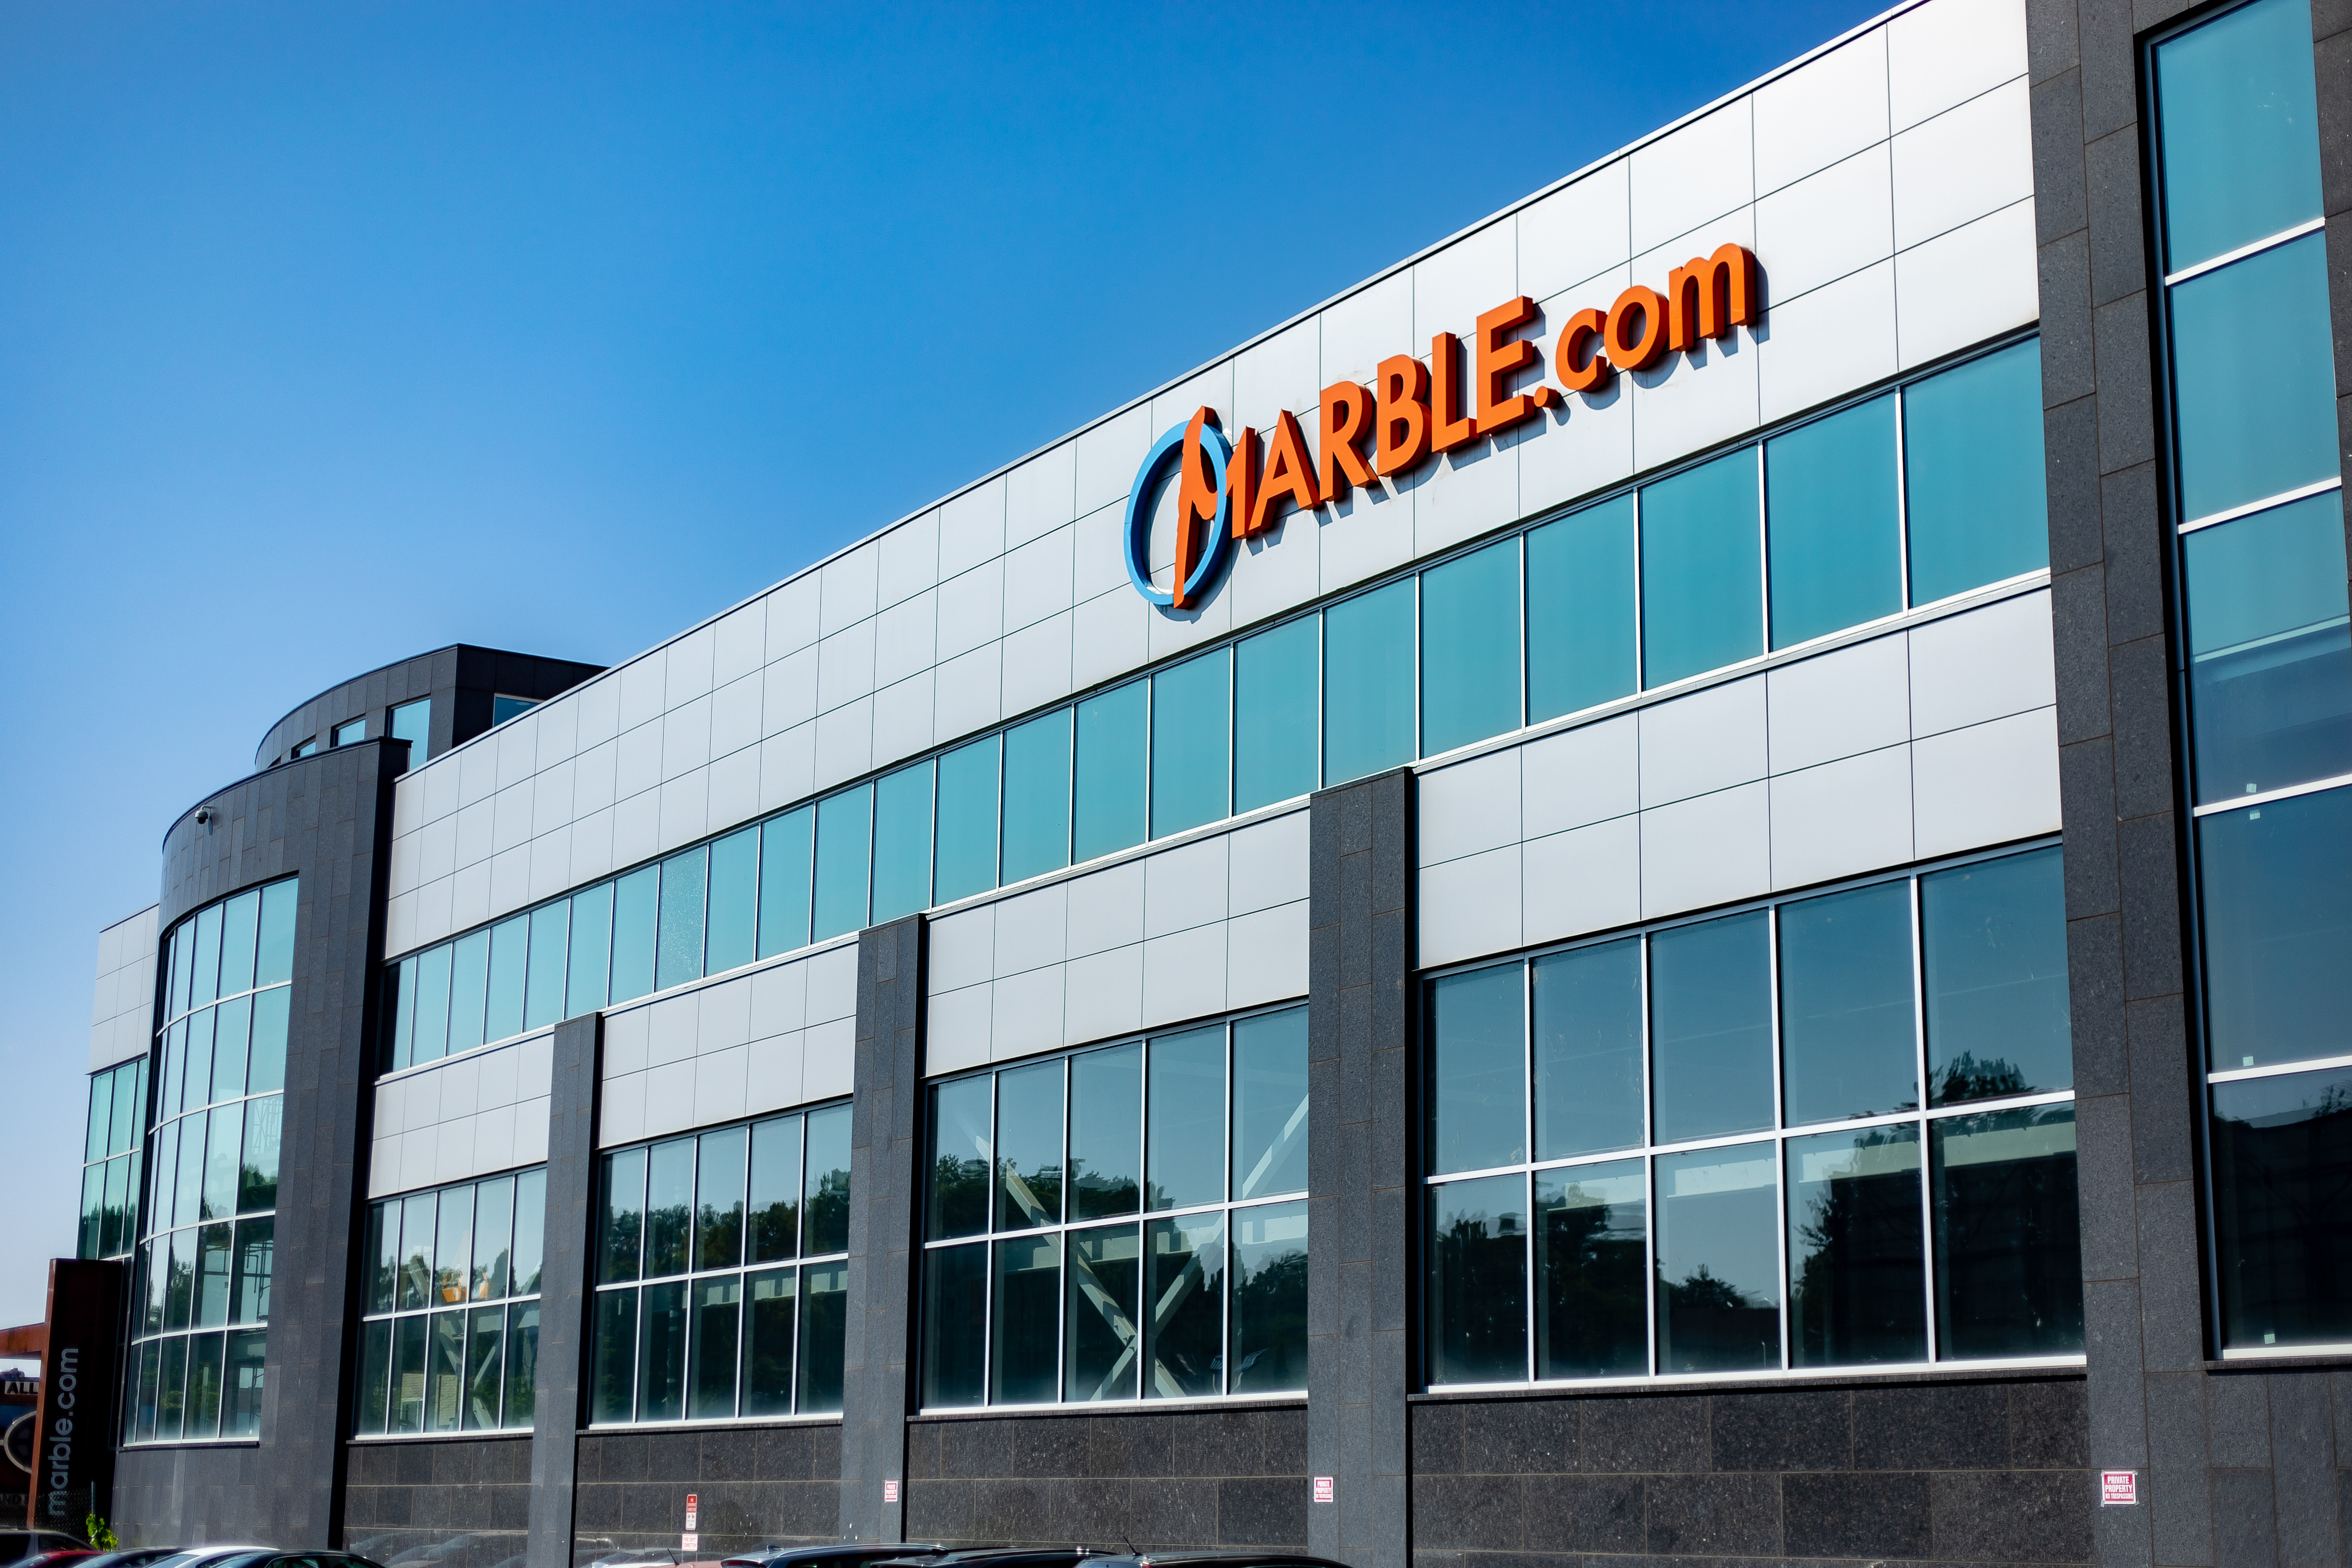 Marble.com Carries More Premium Quality Surface Materials Than Any Other  Local Countertop Company. Our Extensive Inventory Includes Over 200,000  Slabs In ...